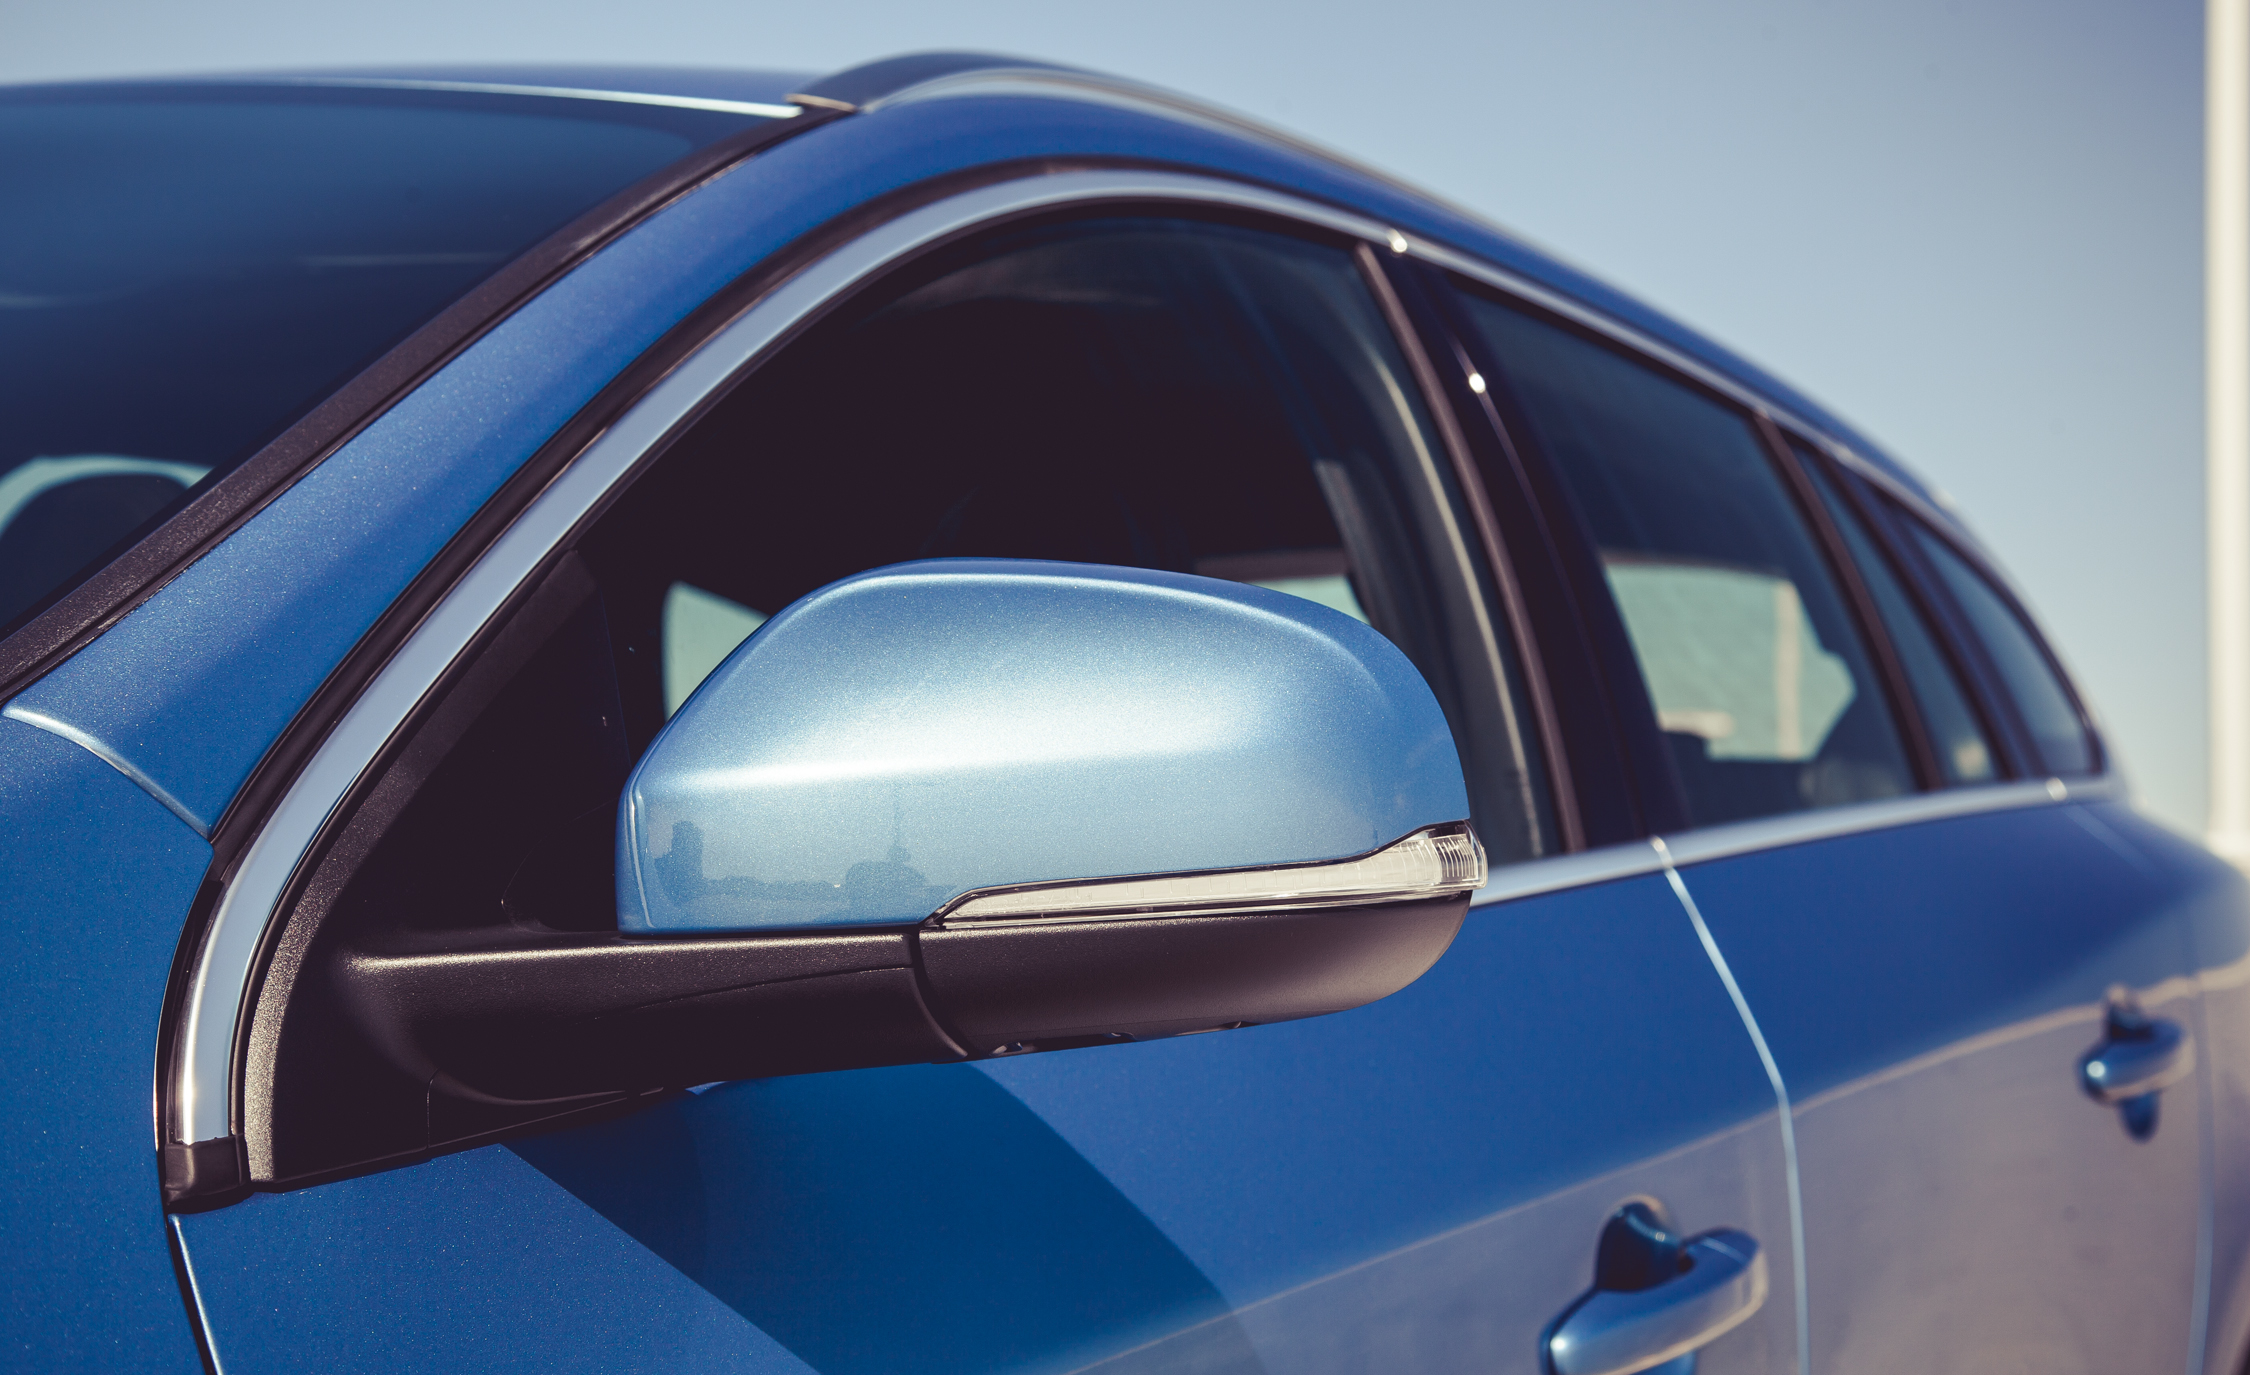 2015 Volvo V60 Side View Mirror (Photo 28 of 38)